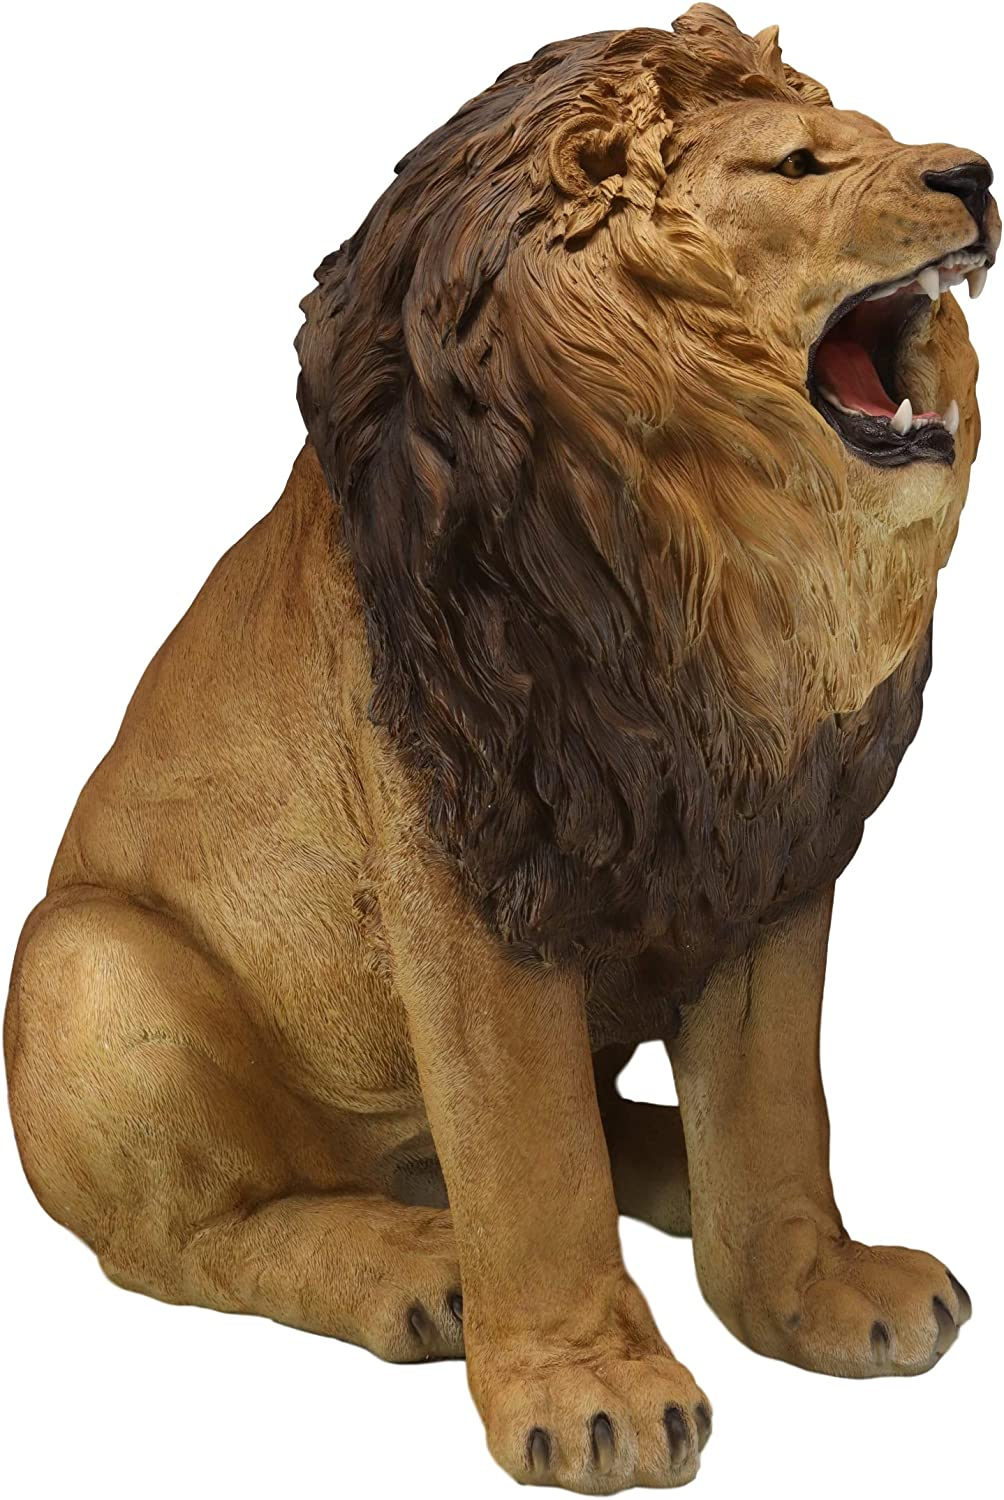 Ebros Giant King Of The Jungle African Pride Fierce Roaring Lion Realistic Statue 41 Tall The Majestic Aslan Lifelike Detailed Gallery Quality Home Garden Patio Resin Sculpture Home Kitchen